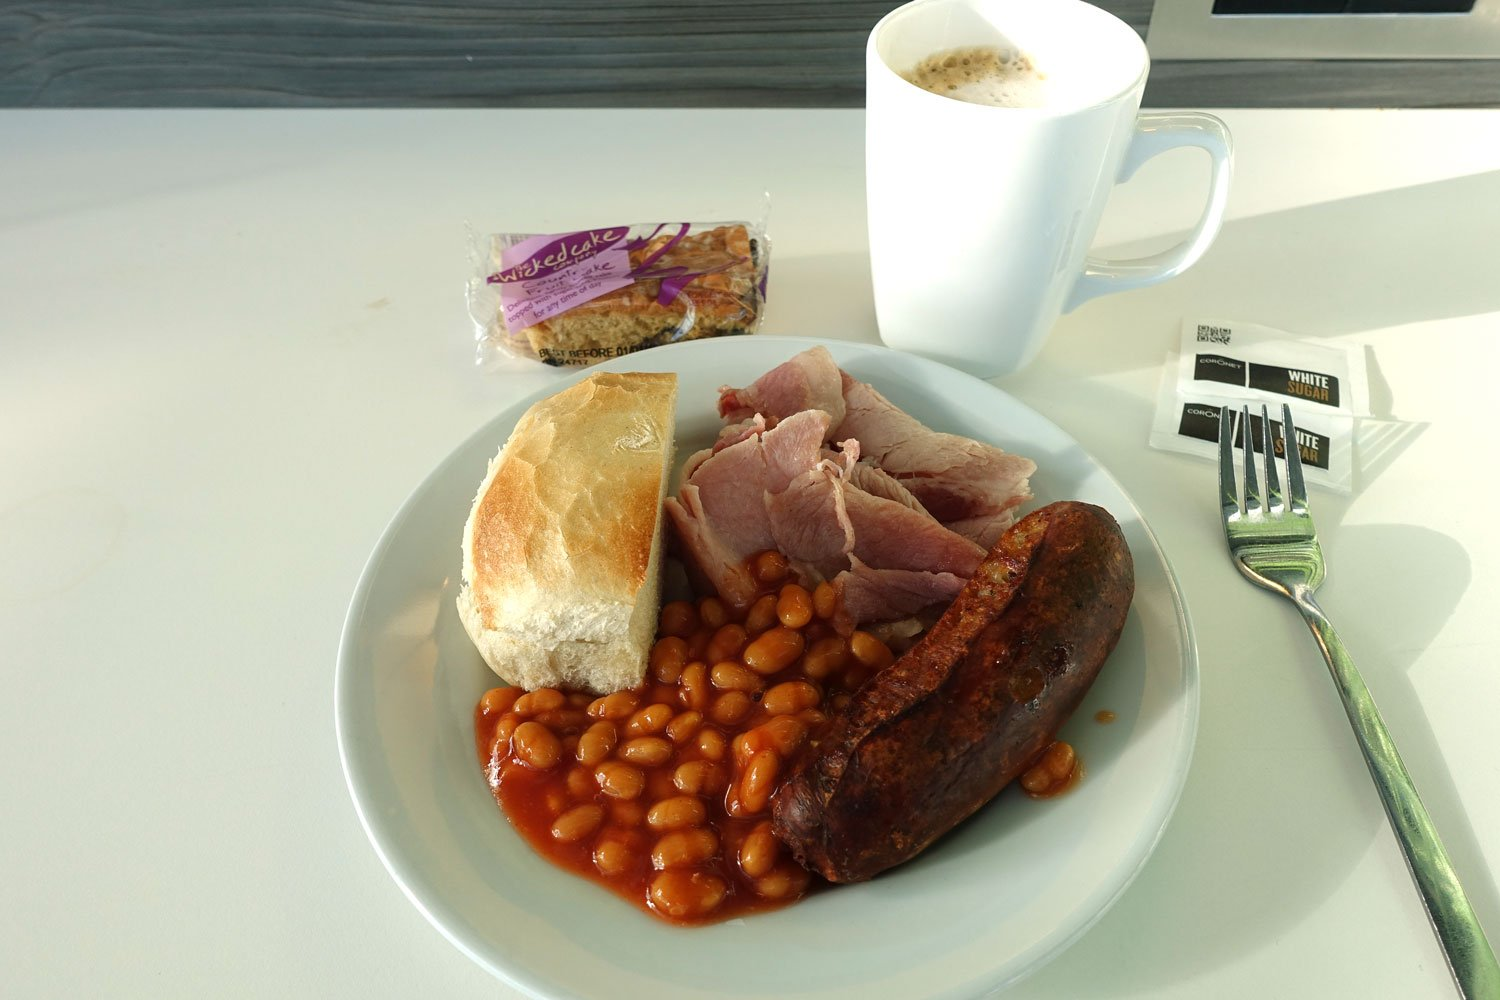 heathrow priority pass lounge - aspire lounge and spa food